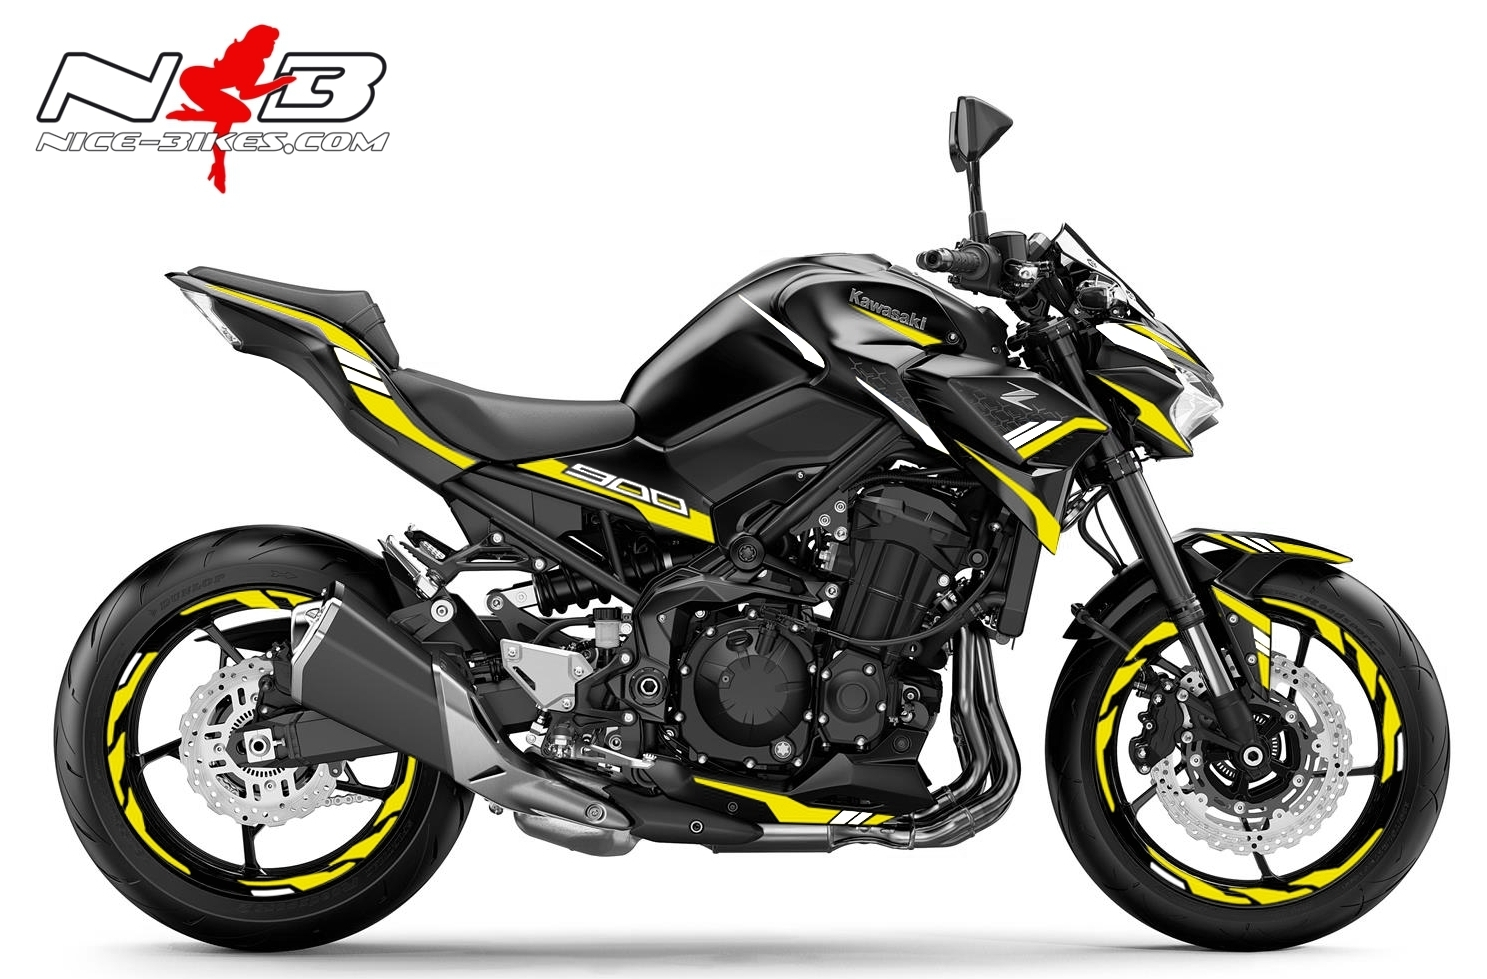 Foliendesign Kawasaki Z900 Bj. 2020 Hornet Yellow